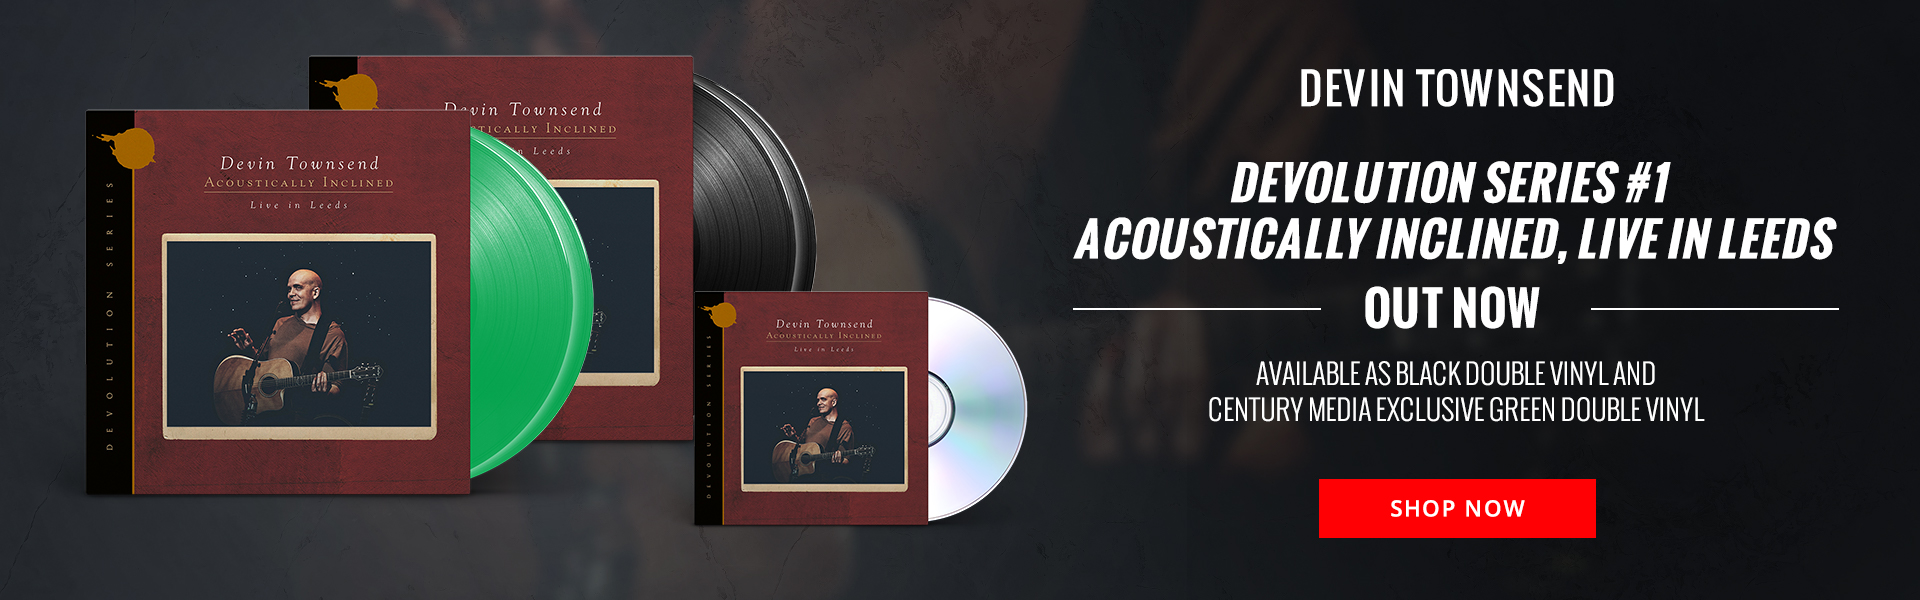 Devin Townsend's Devolution Series #1 Acoustically Inclined, Live in Leeds out now. Available as black double vinyl and Century Media exclusive green double vinyl. Shop Now.